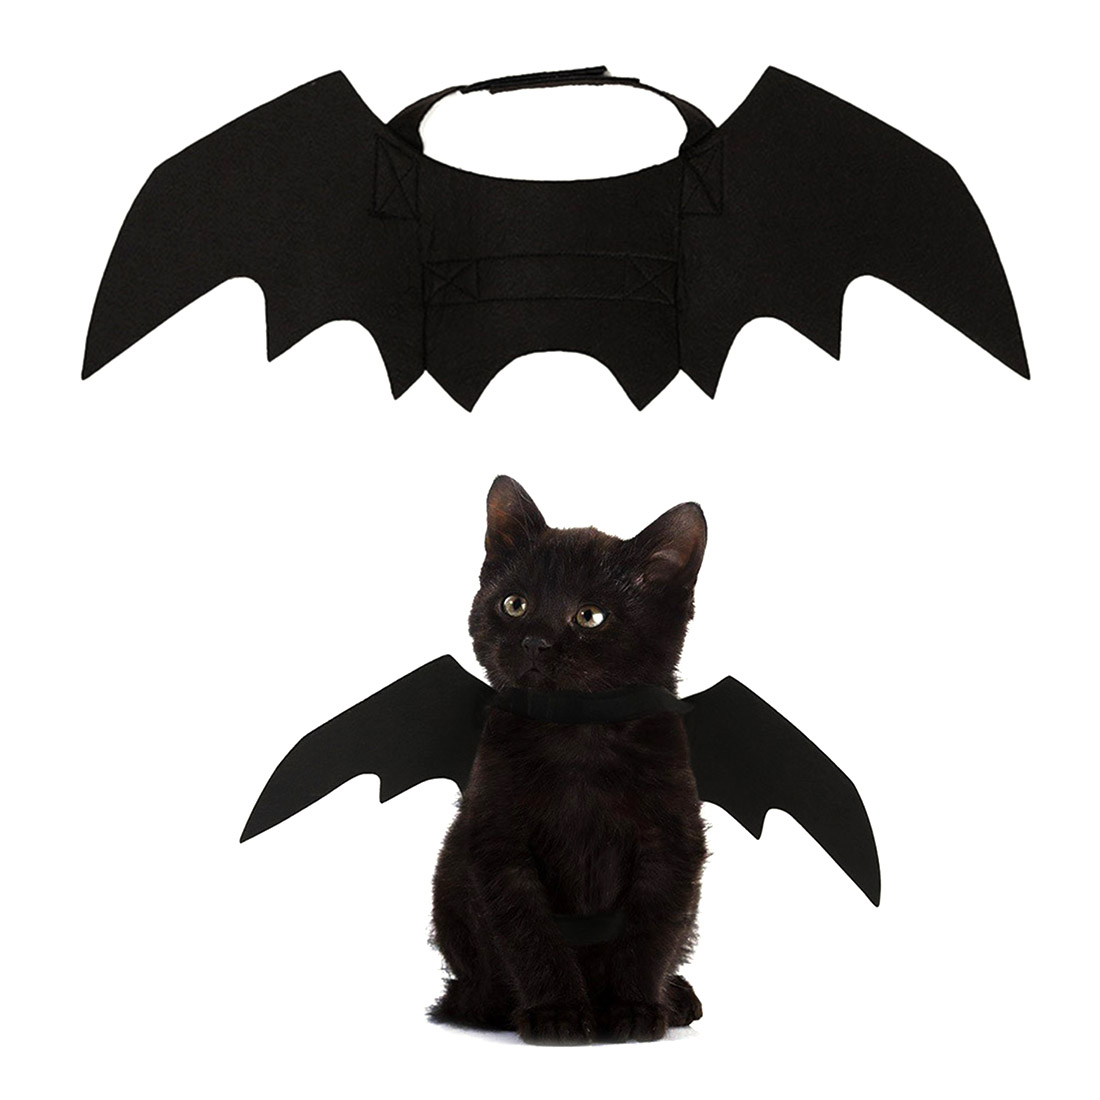 1pc Pet Cats Clothes Bat Wings Halloween Collar Leads Pet Bat Wings Cat Vest Harness Costume Bat Wings Decor Cat Accessories